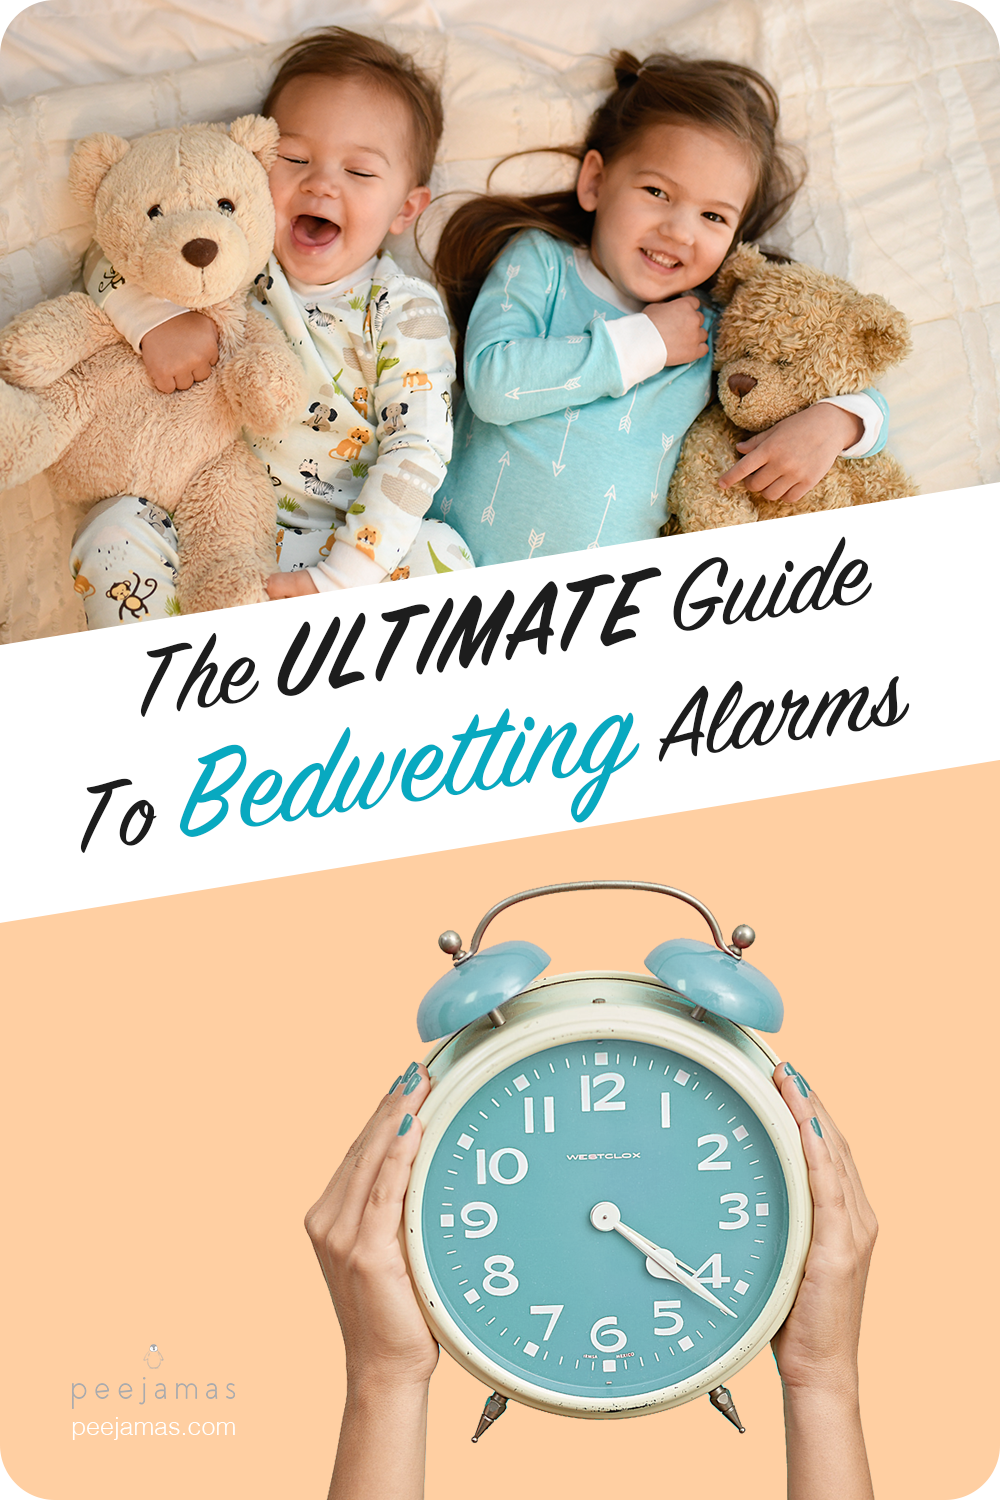 The Ultimate Guide To Bedwetting Alarms in 2020